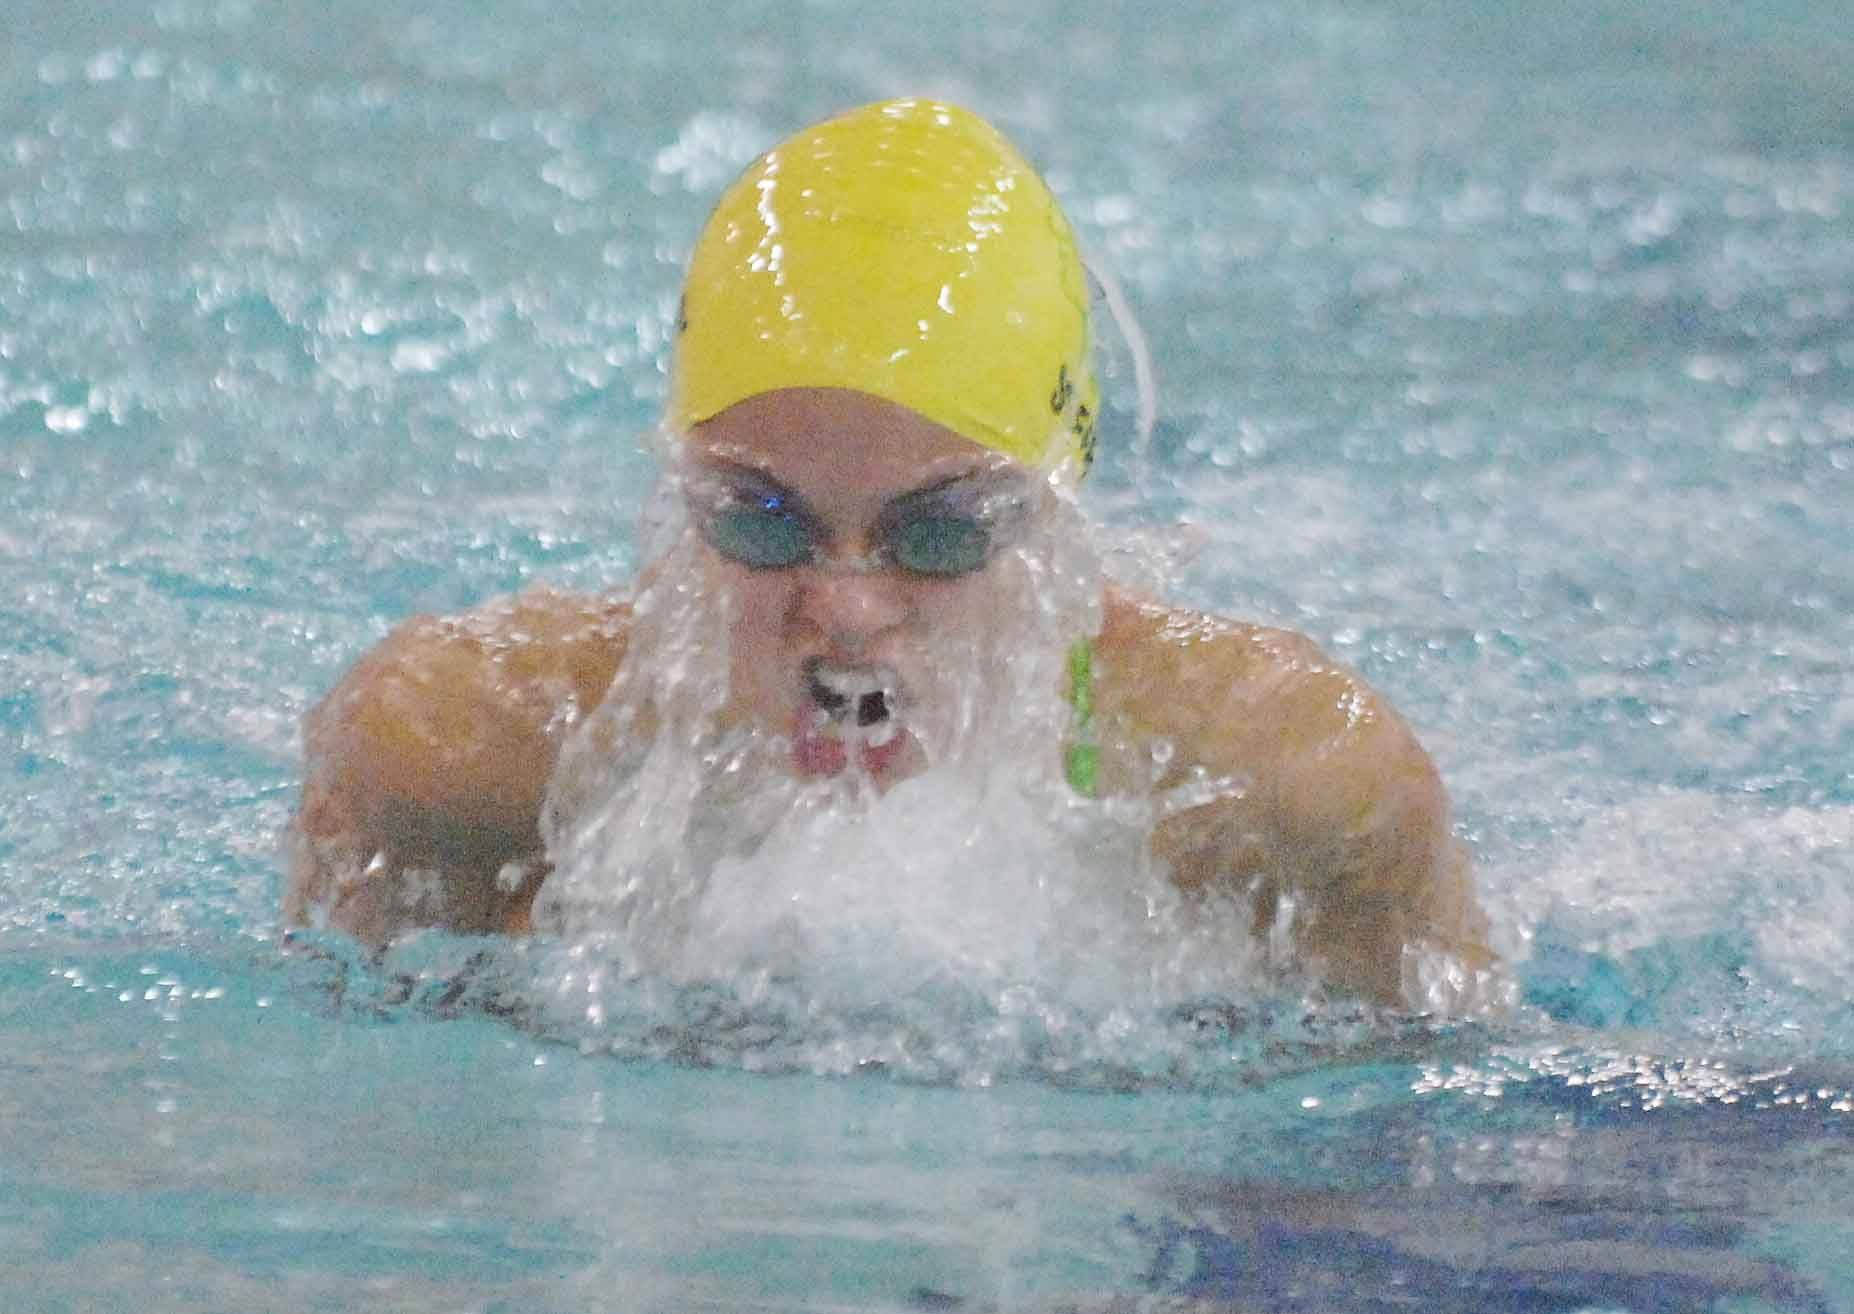 Alexa Steffi of Waubonsie in the 200 Medley Relay at the Downers Grove North swimming invitational Saturday.